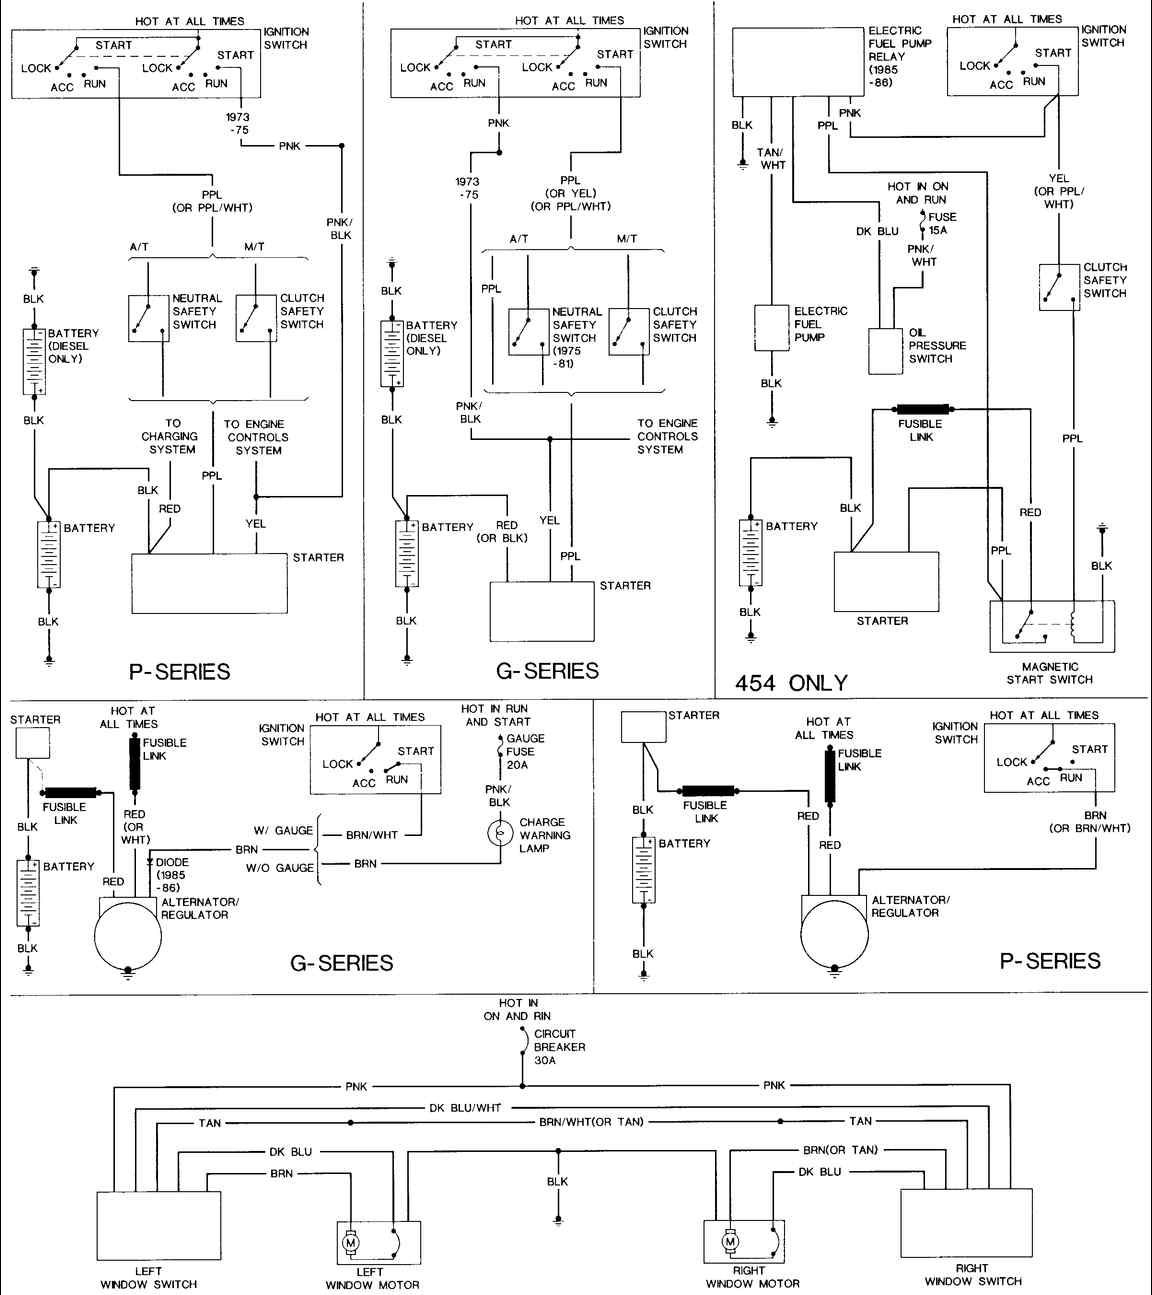 0c73623a181dc376dbb4777e2029d285 85 chevy truck wiring diagram 85 chevy van the steering column 1937 Chevy Panel Truck at sewacar.co